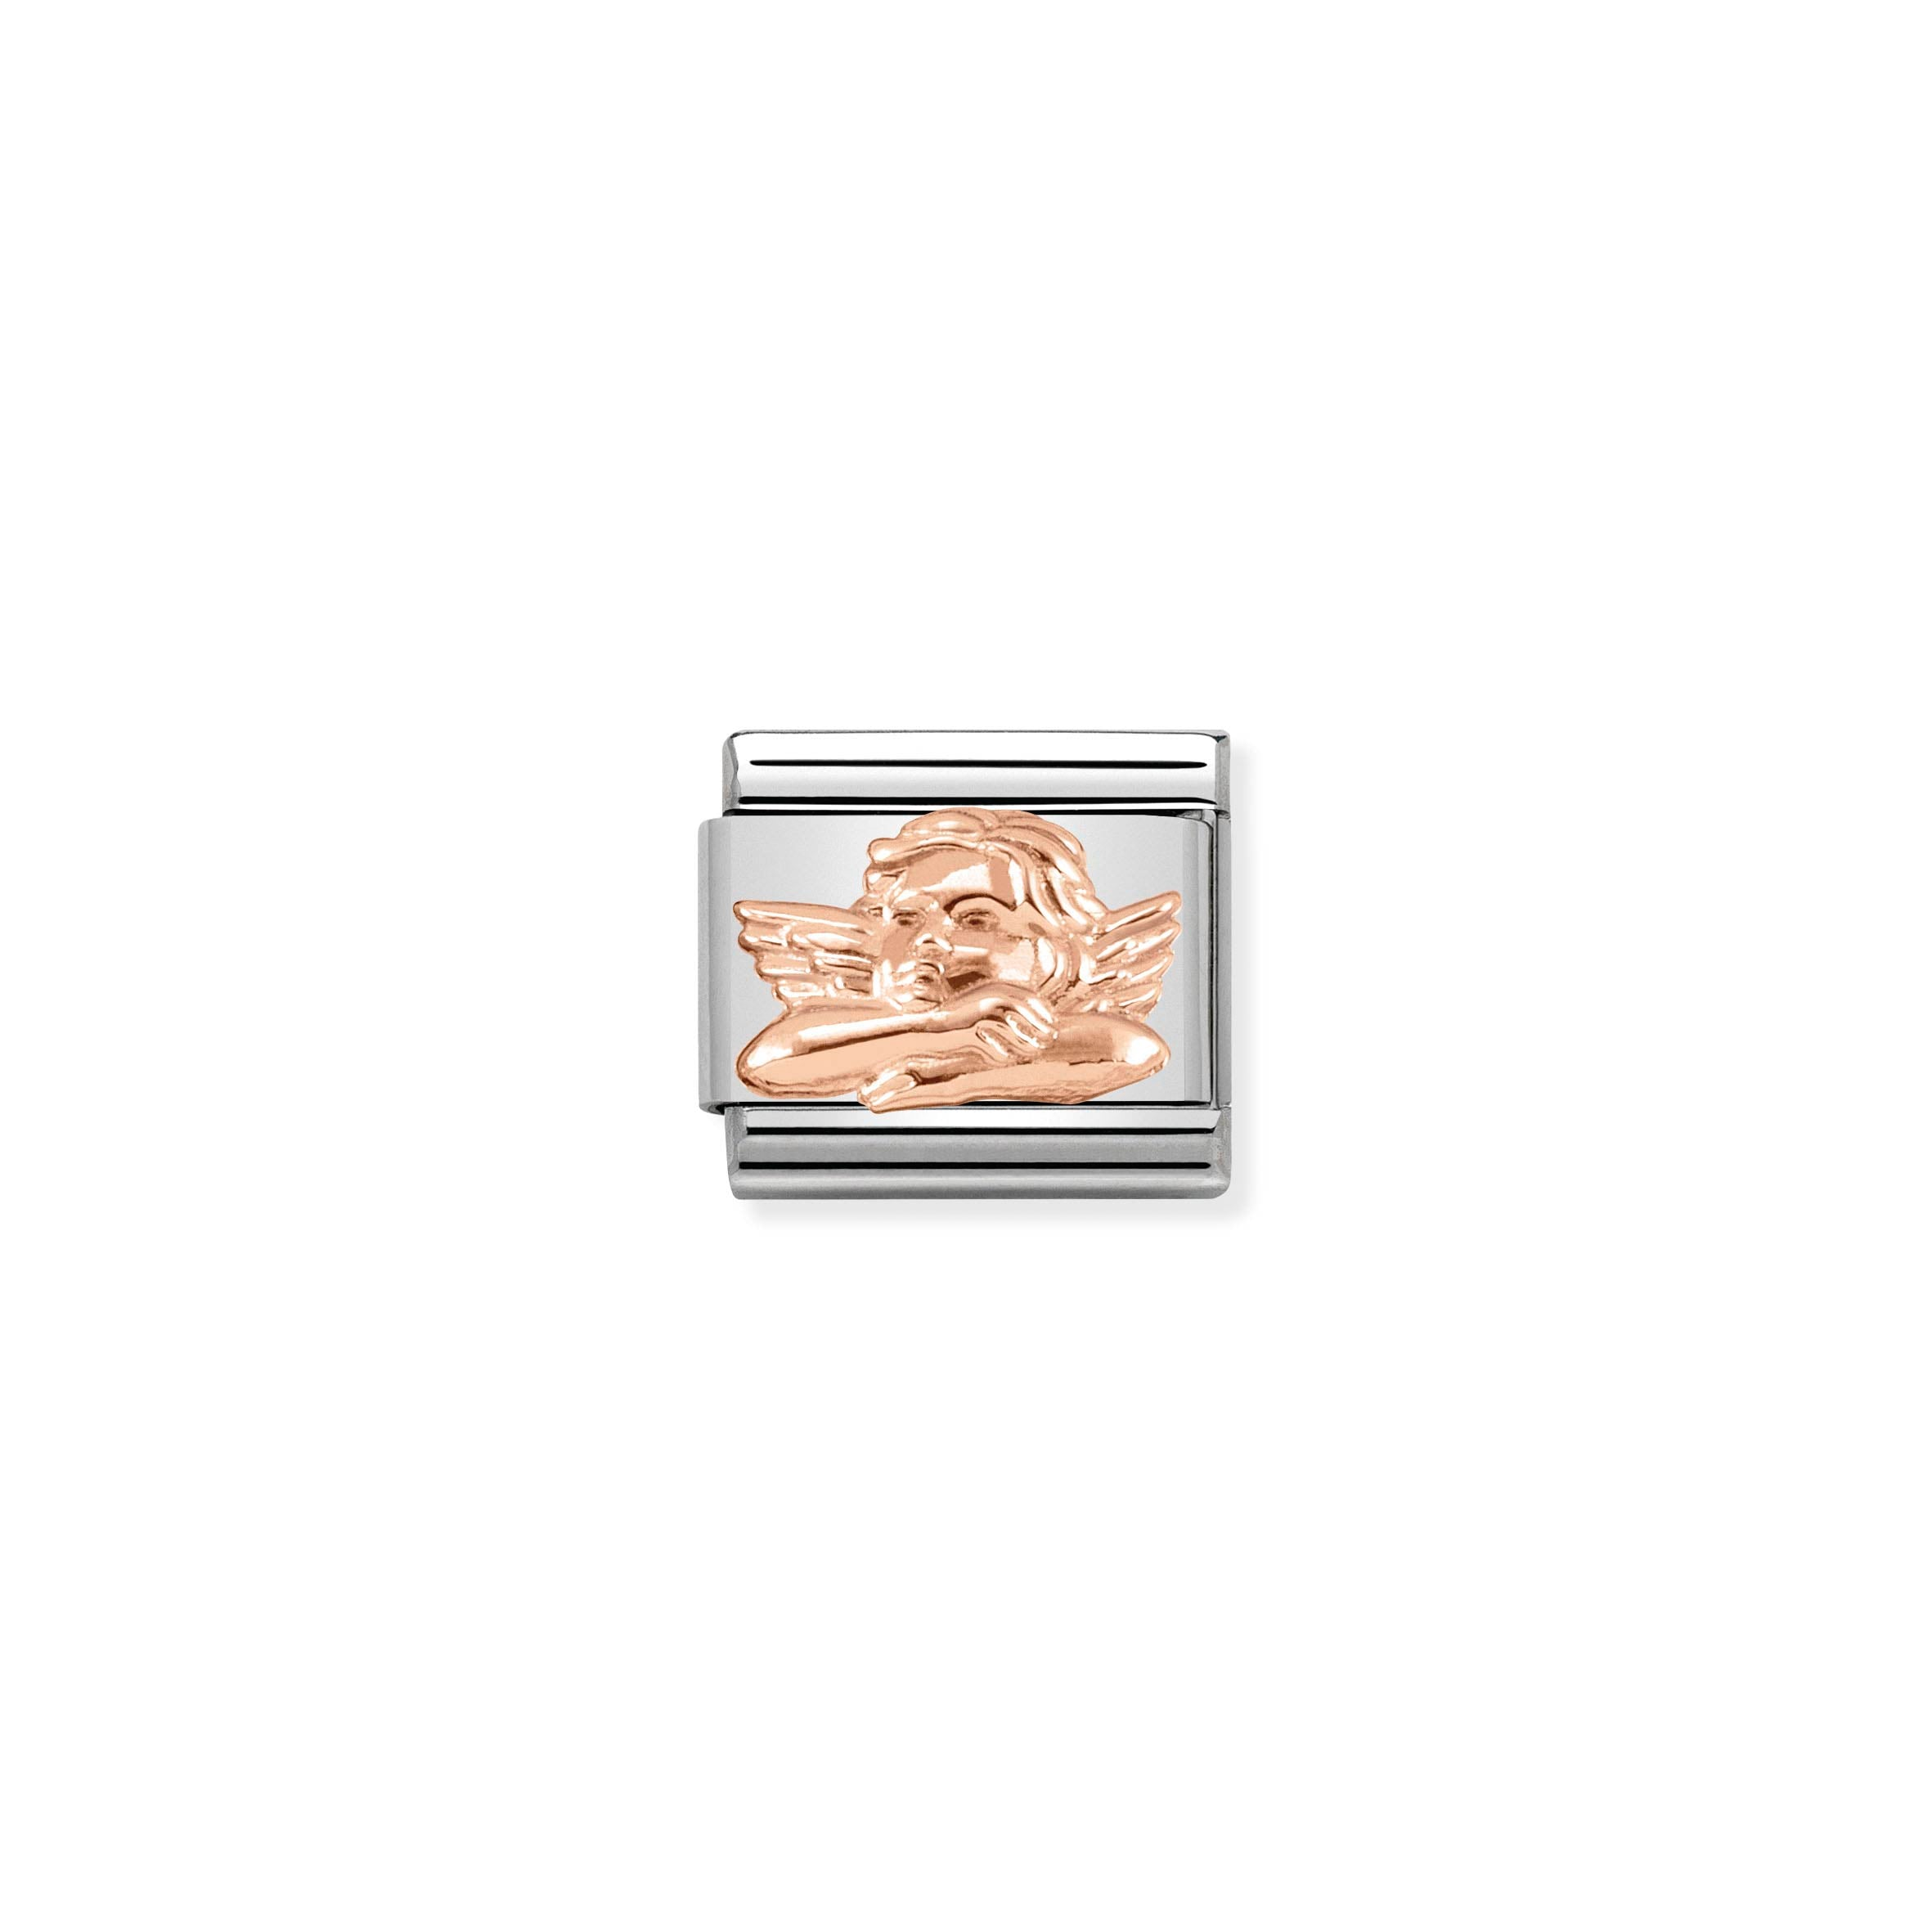 NOMINATION - Composable Classic RELIEF SYMBOLS st/steel & 9ct rose gold (Angel of friendship)